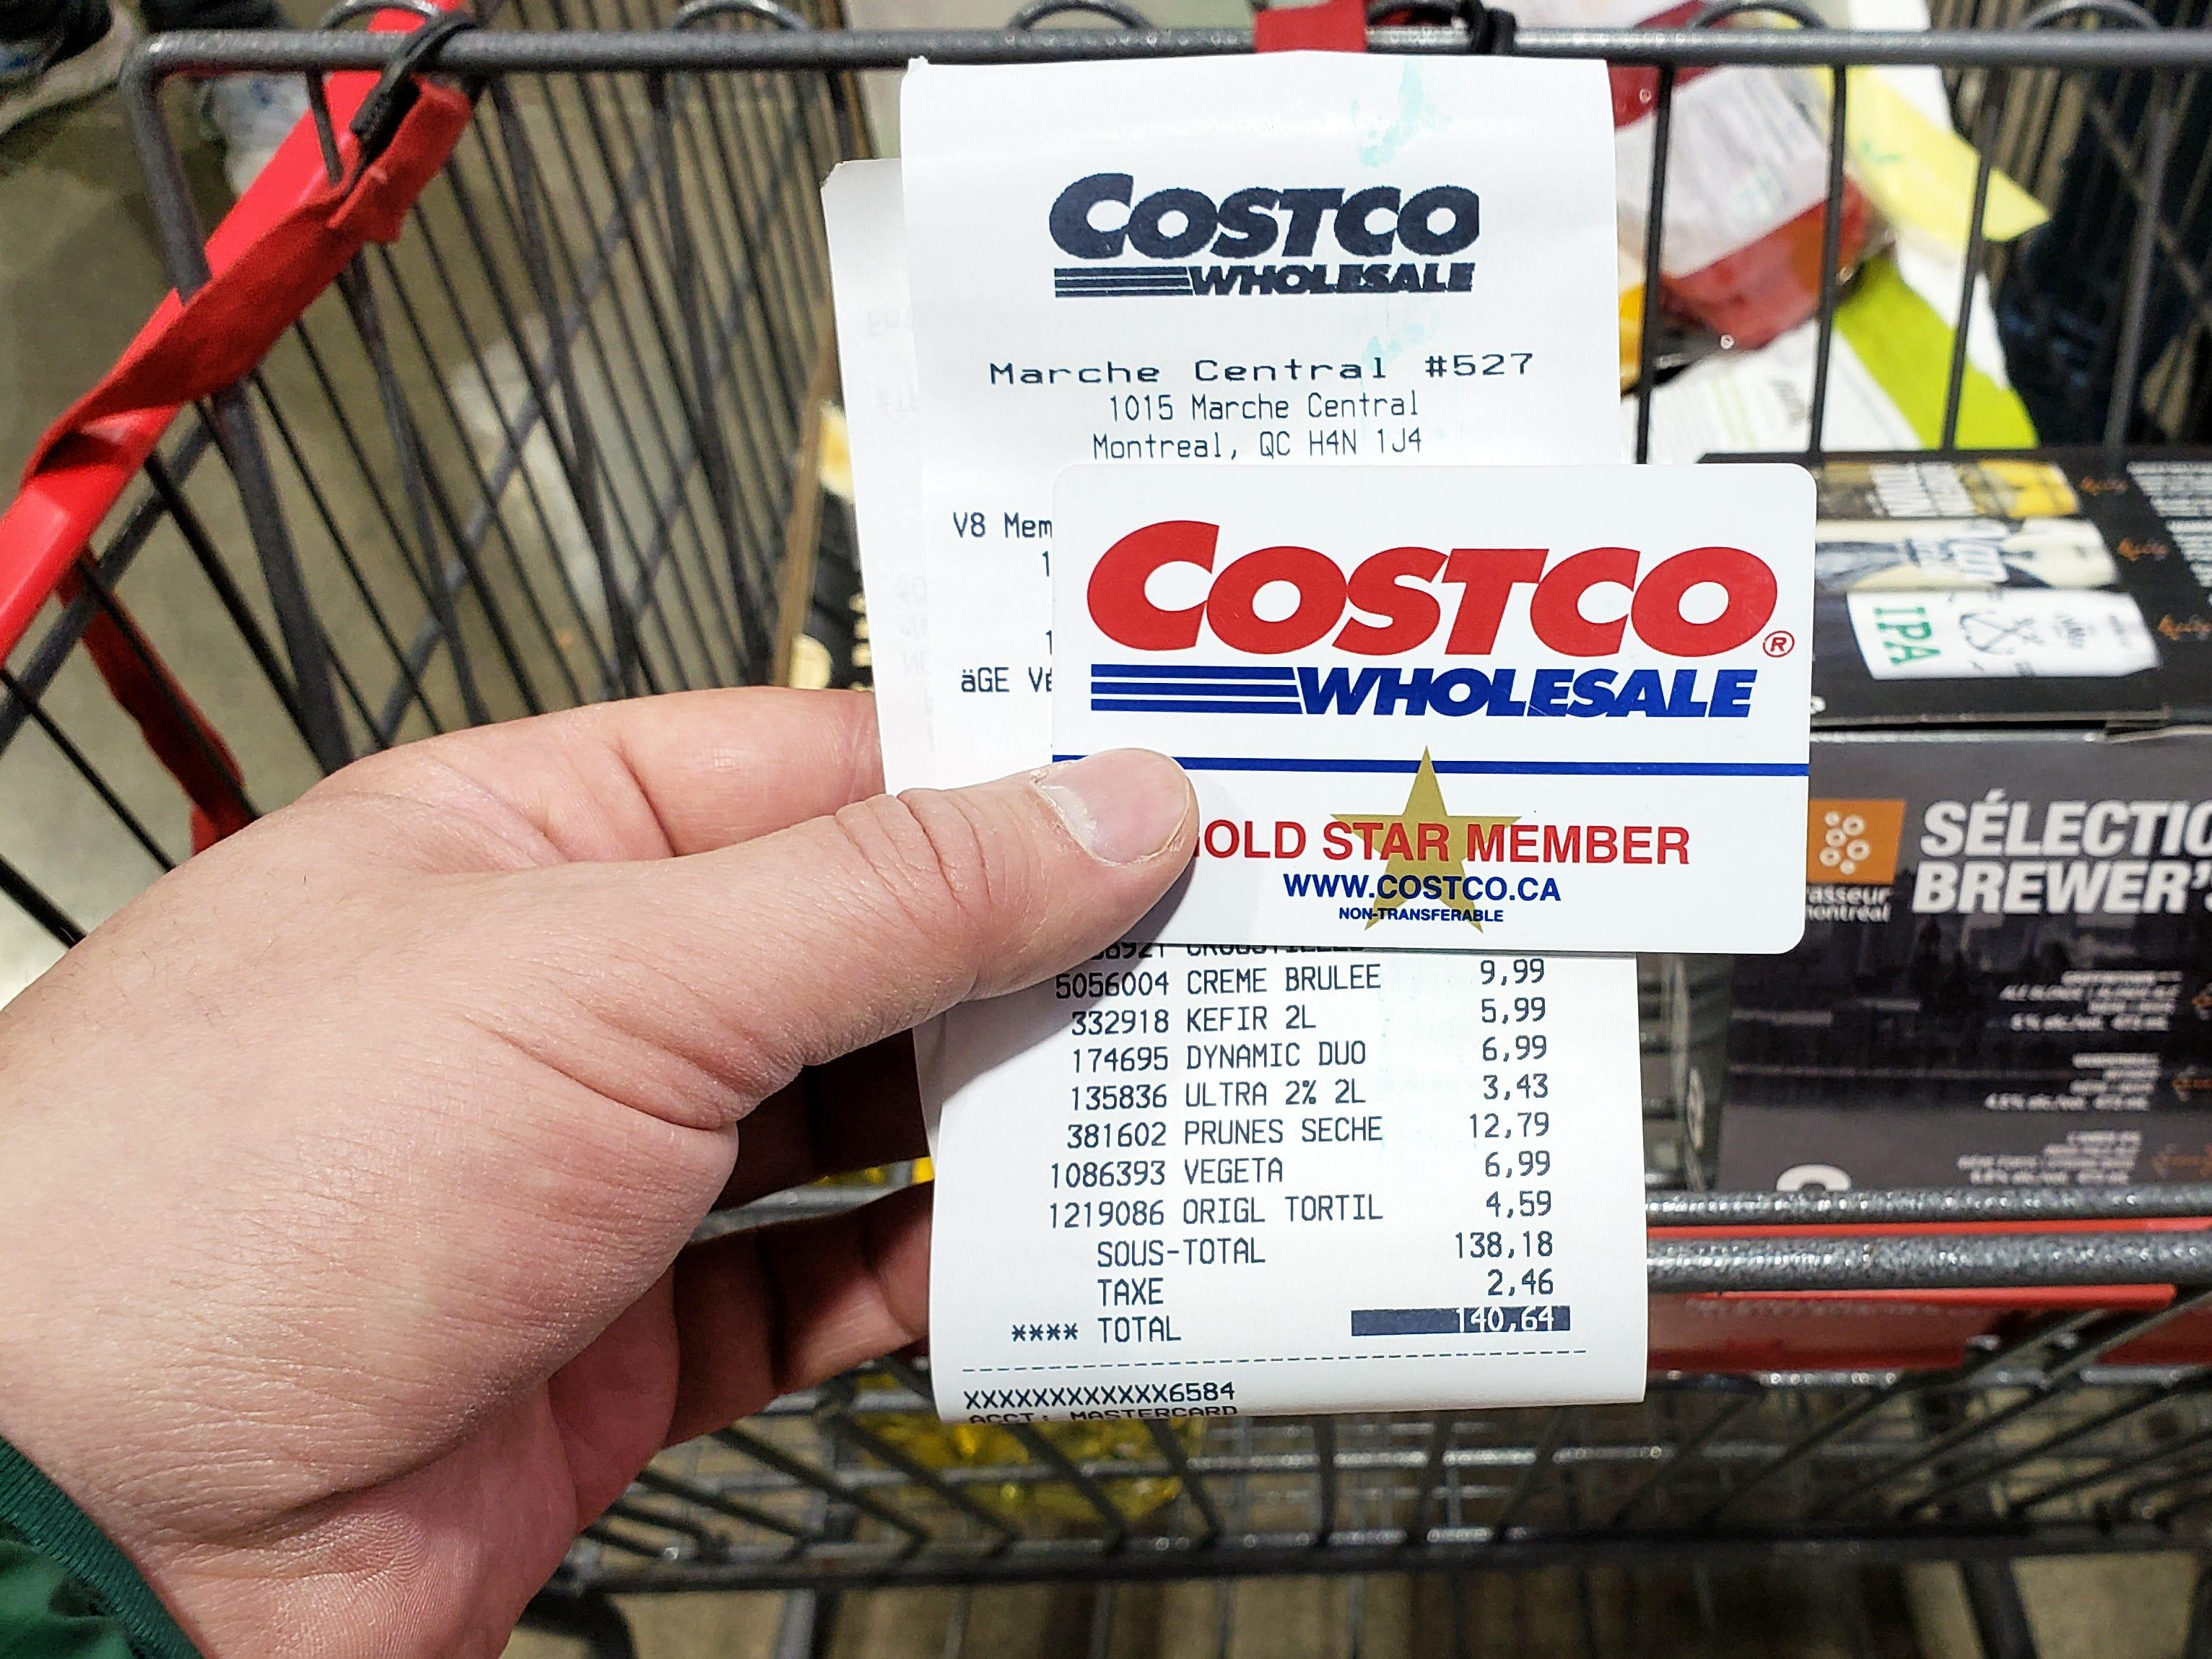 10 things you should never do at Costco, according to employees